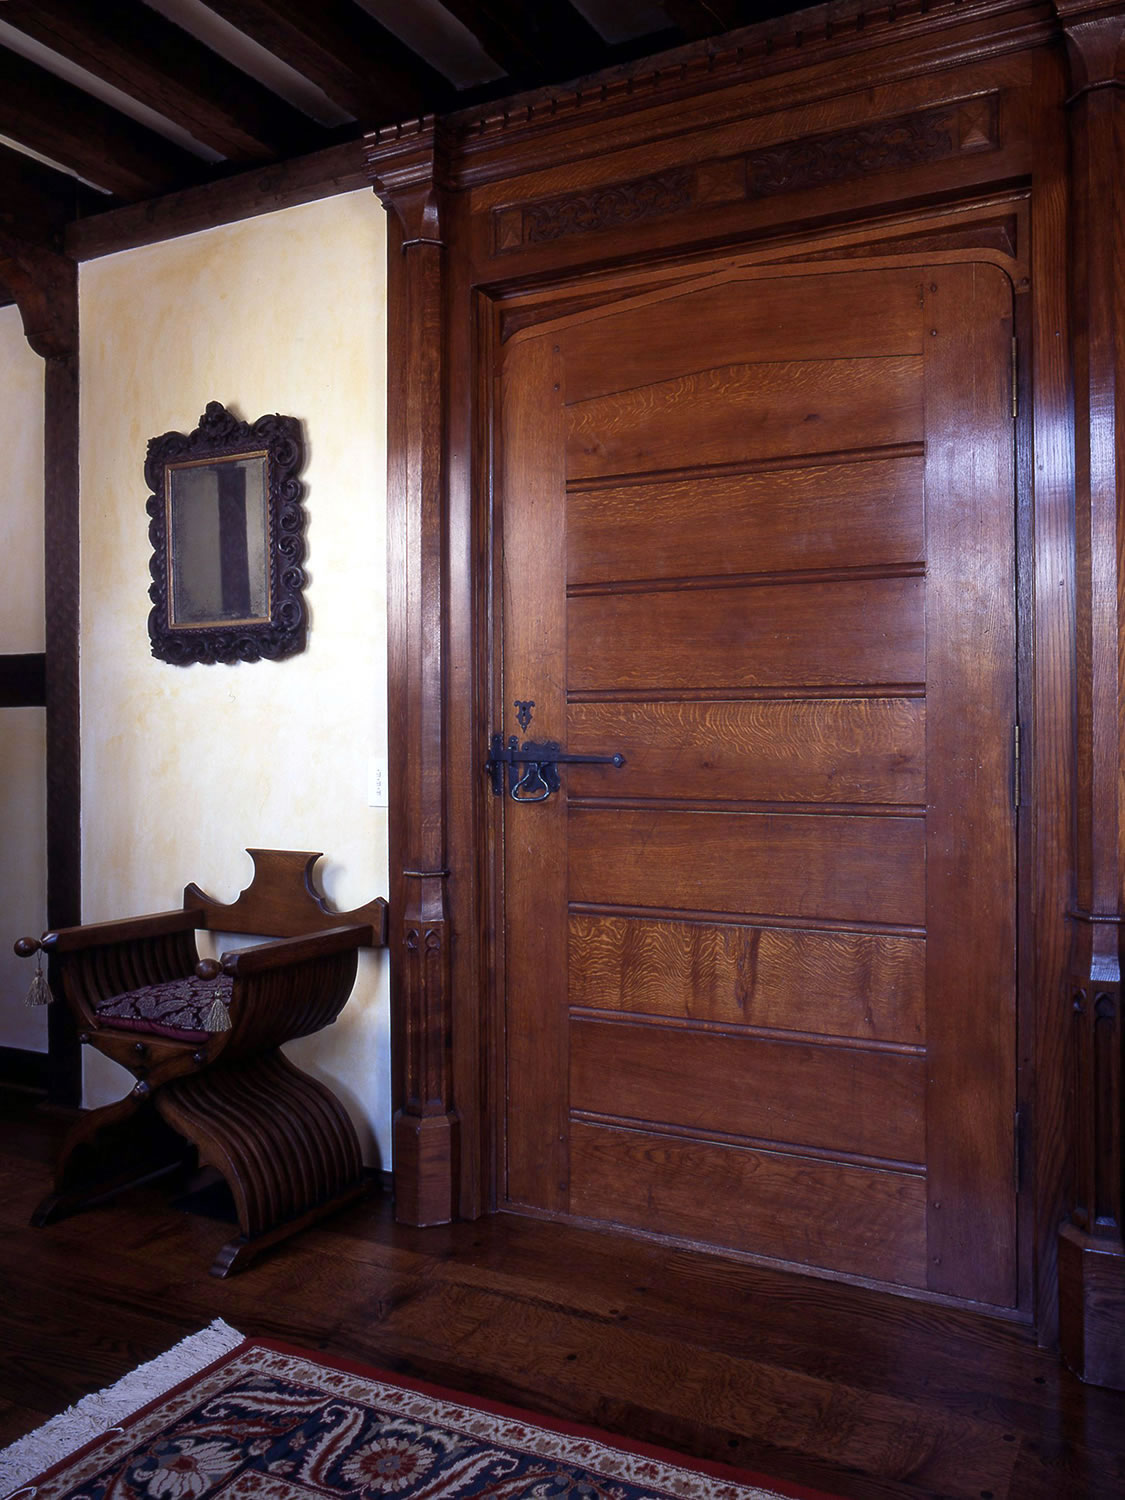 C16th style soild oak door with hand-carved surround